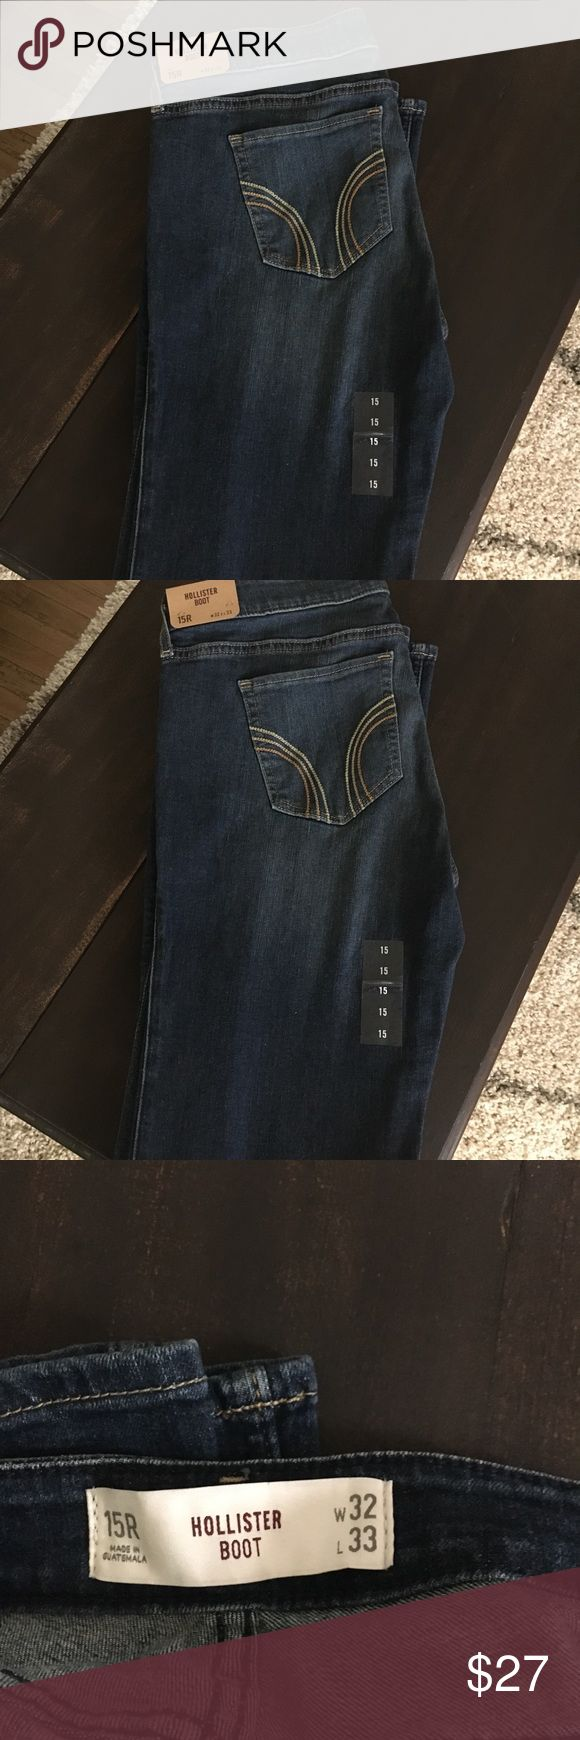 Women's Hollister boot cut jeans NWT 15R Women's Hollister boot cut jeans 15R  32X 33 NWT  super cute stretchy jeans 👖  Fast shipping 🏃🏼♀️🏃🏼♀️ Hollister Jeans Boot Cut